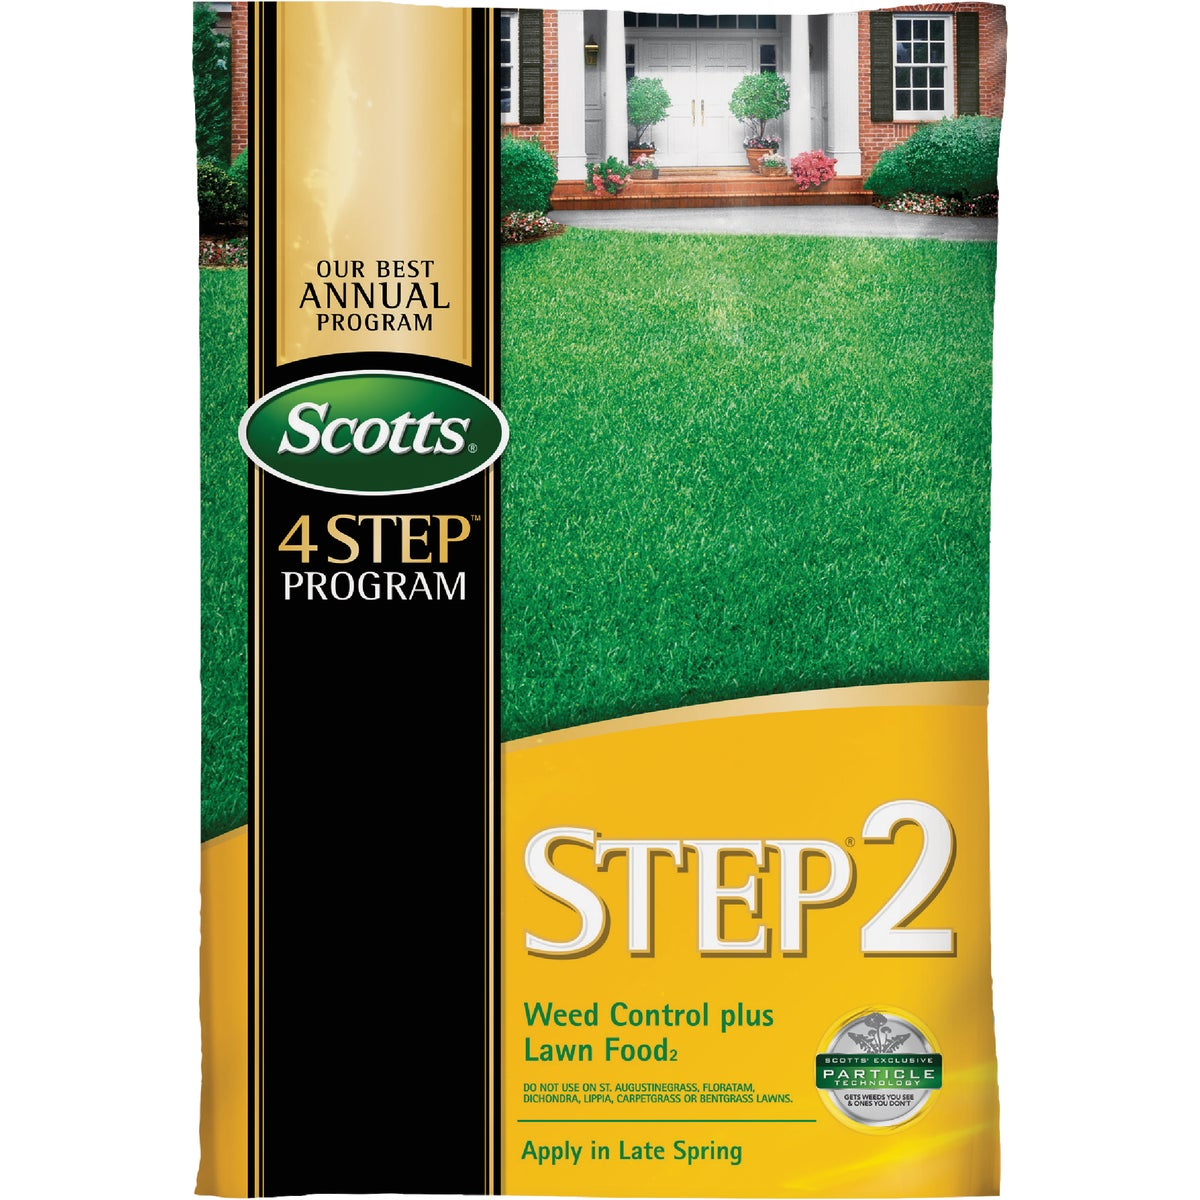 5M STEP 2 WEED&FEED FERT - 23615 by Scotts Company